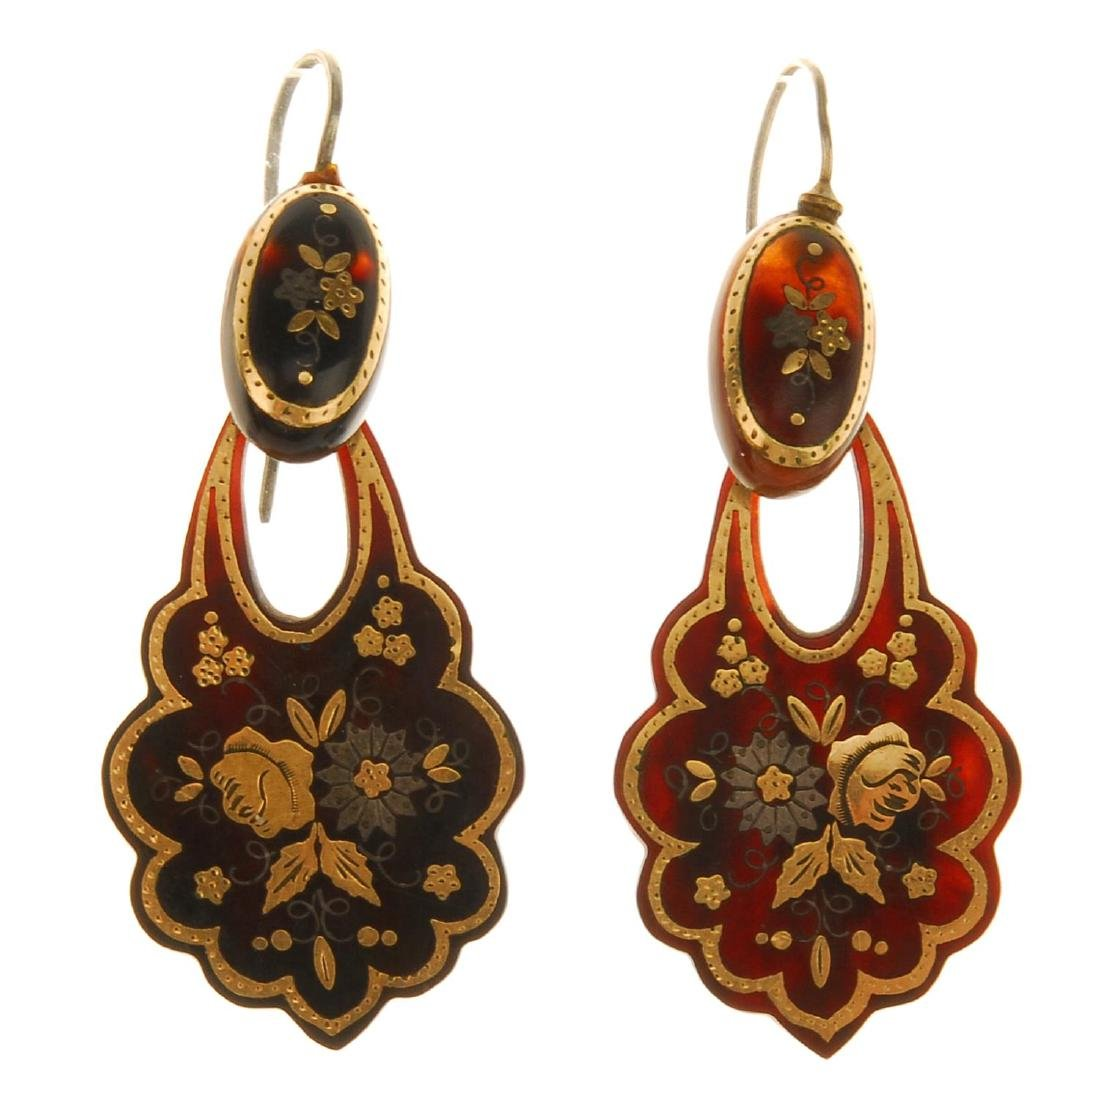 A pair of late 19th century tortoiseshell pique